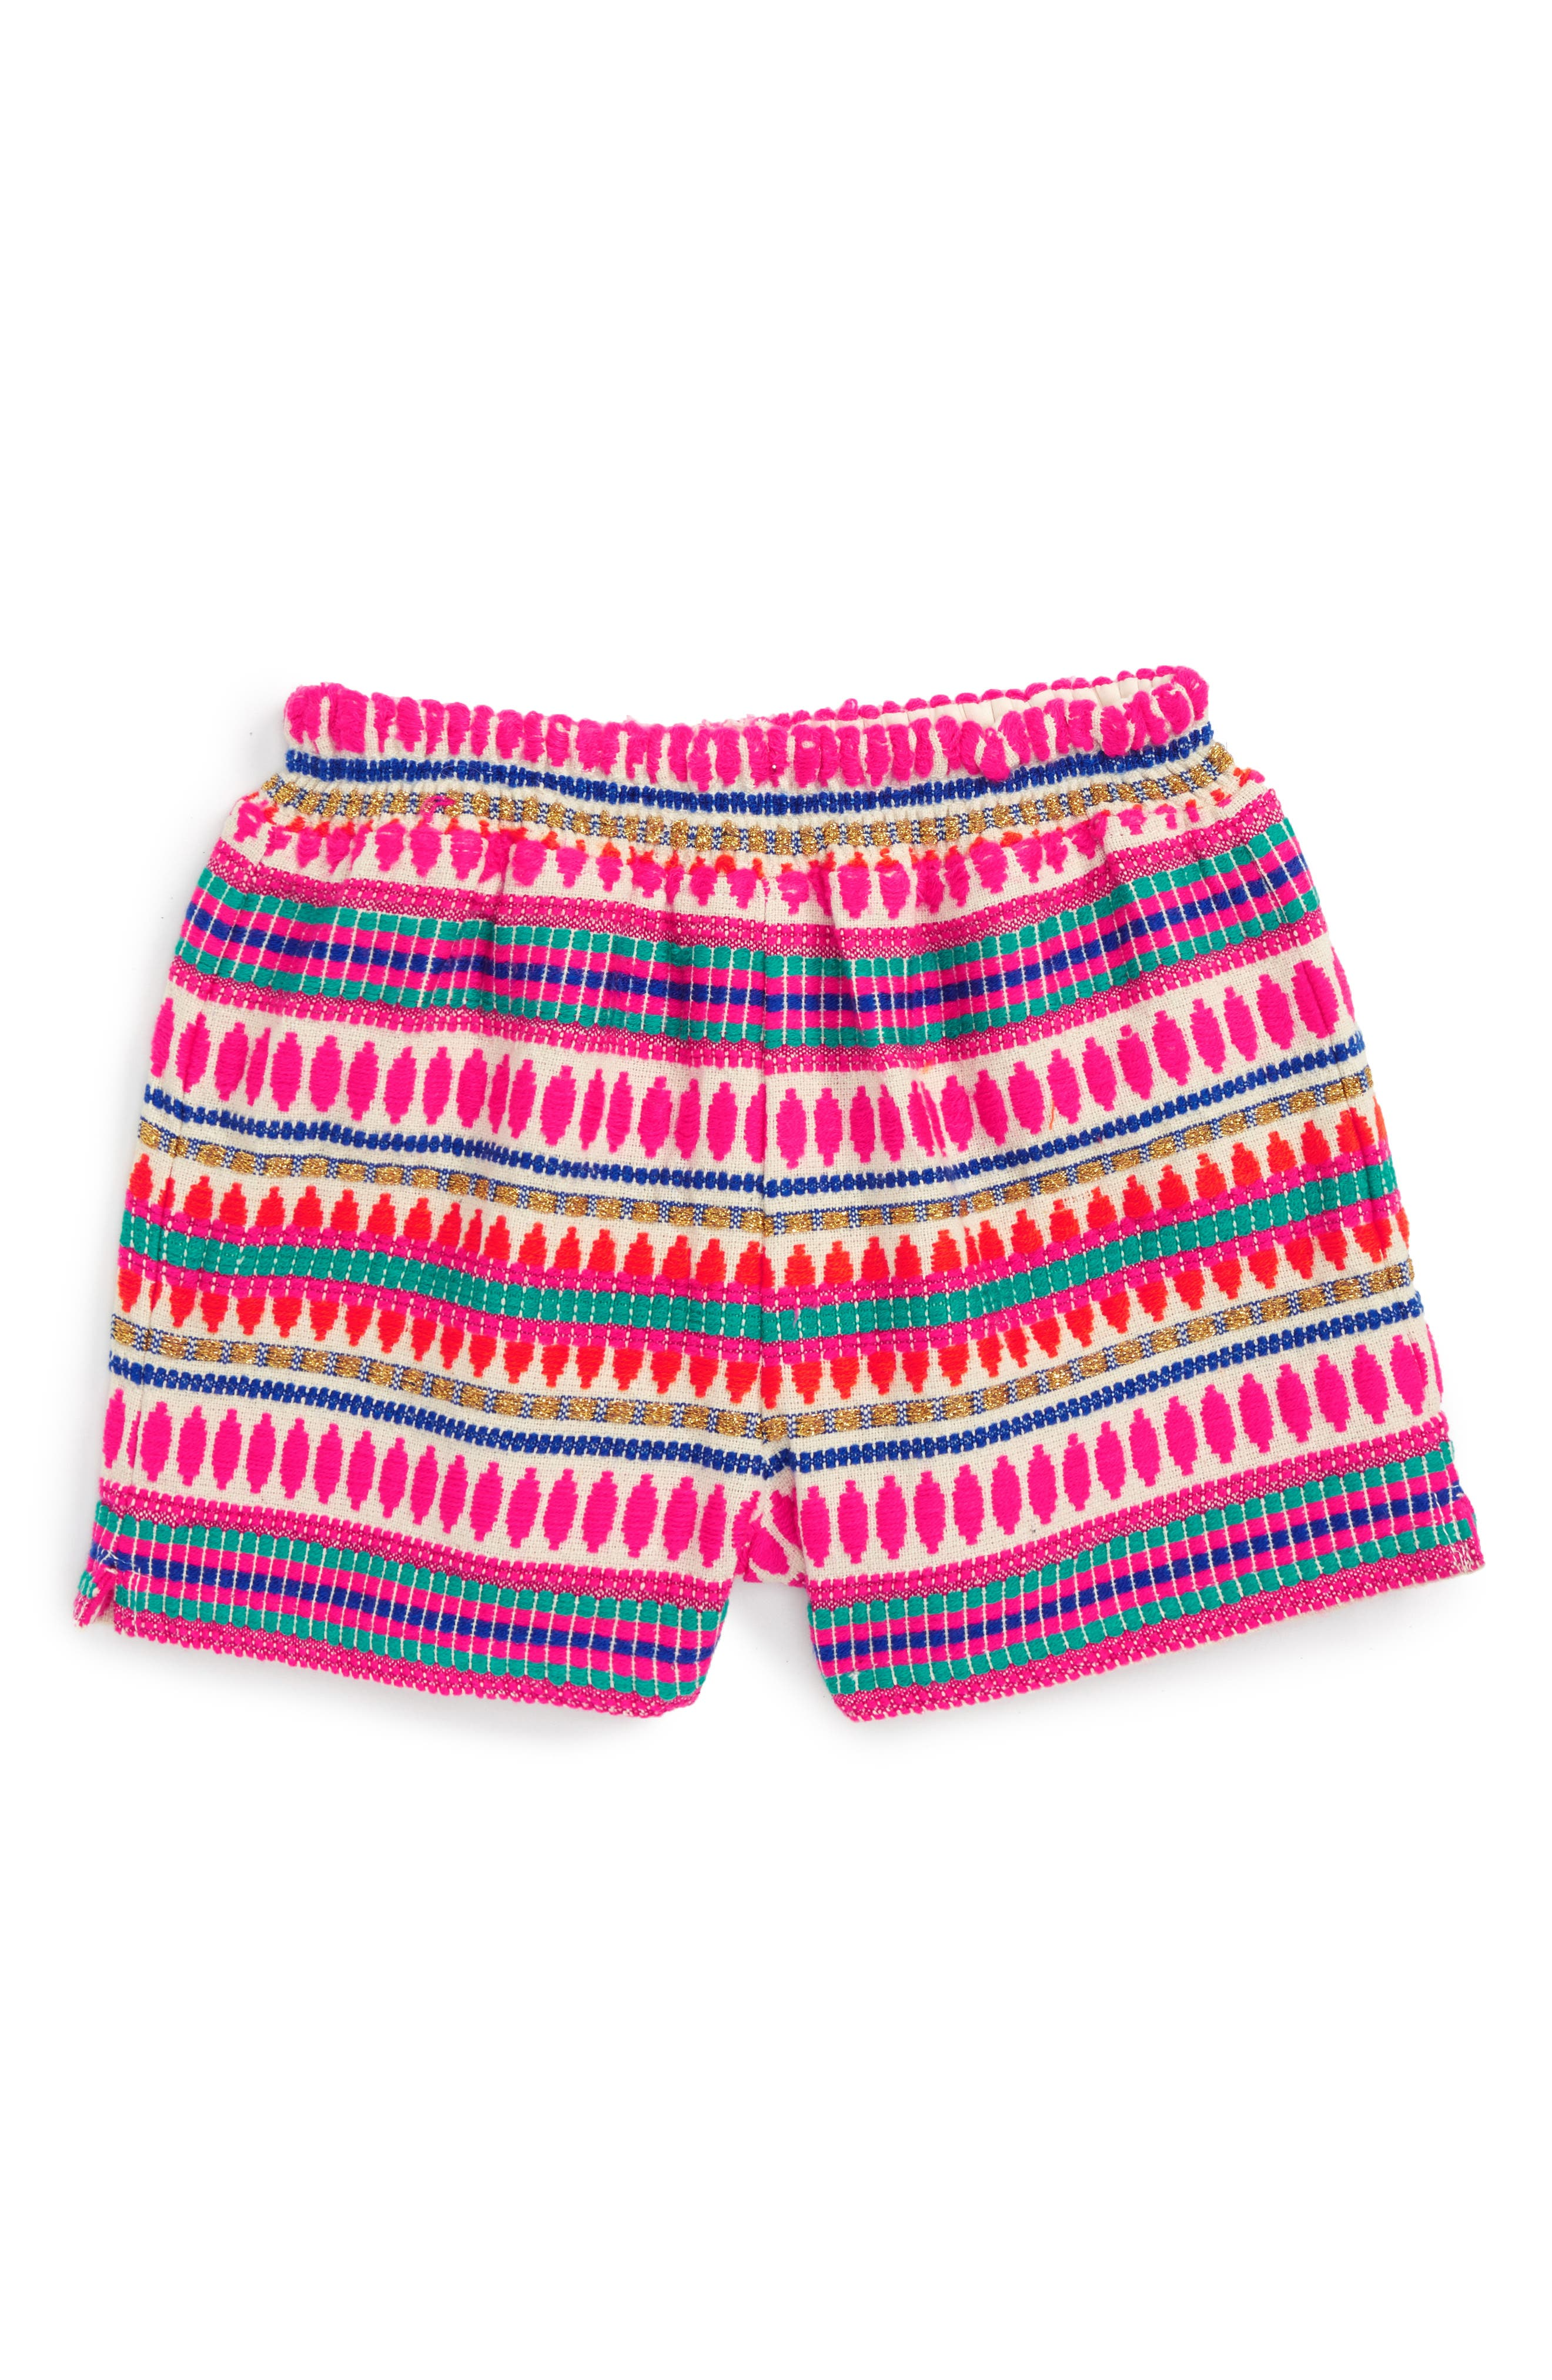 Peek Mexico Embroidered Shorts (Toddler Girls, Little Girls & Big Girls)